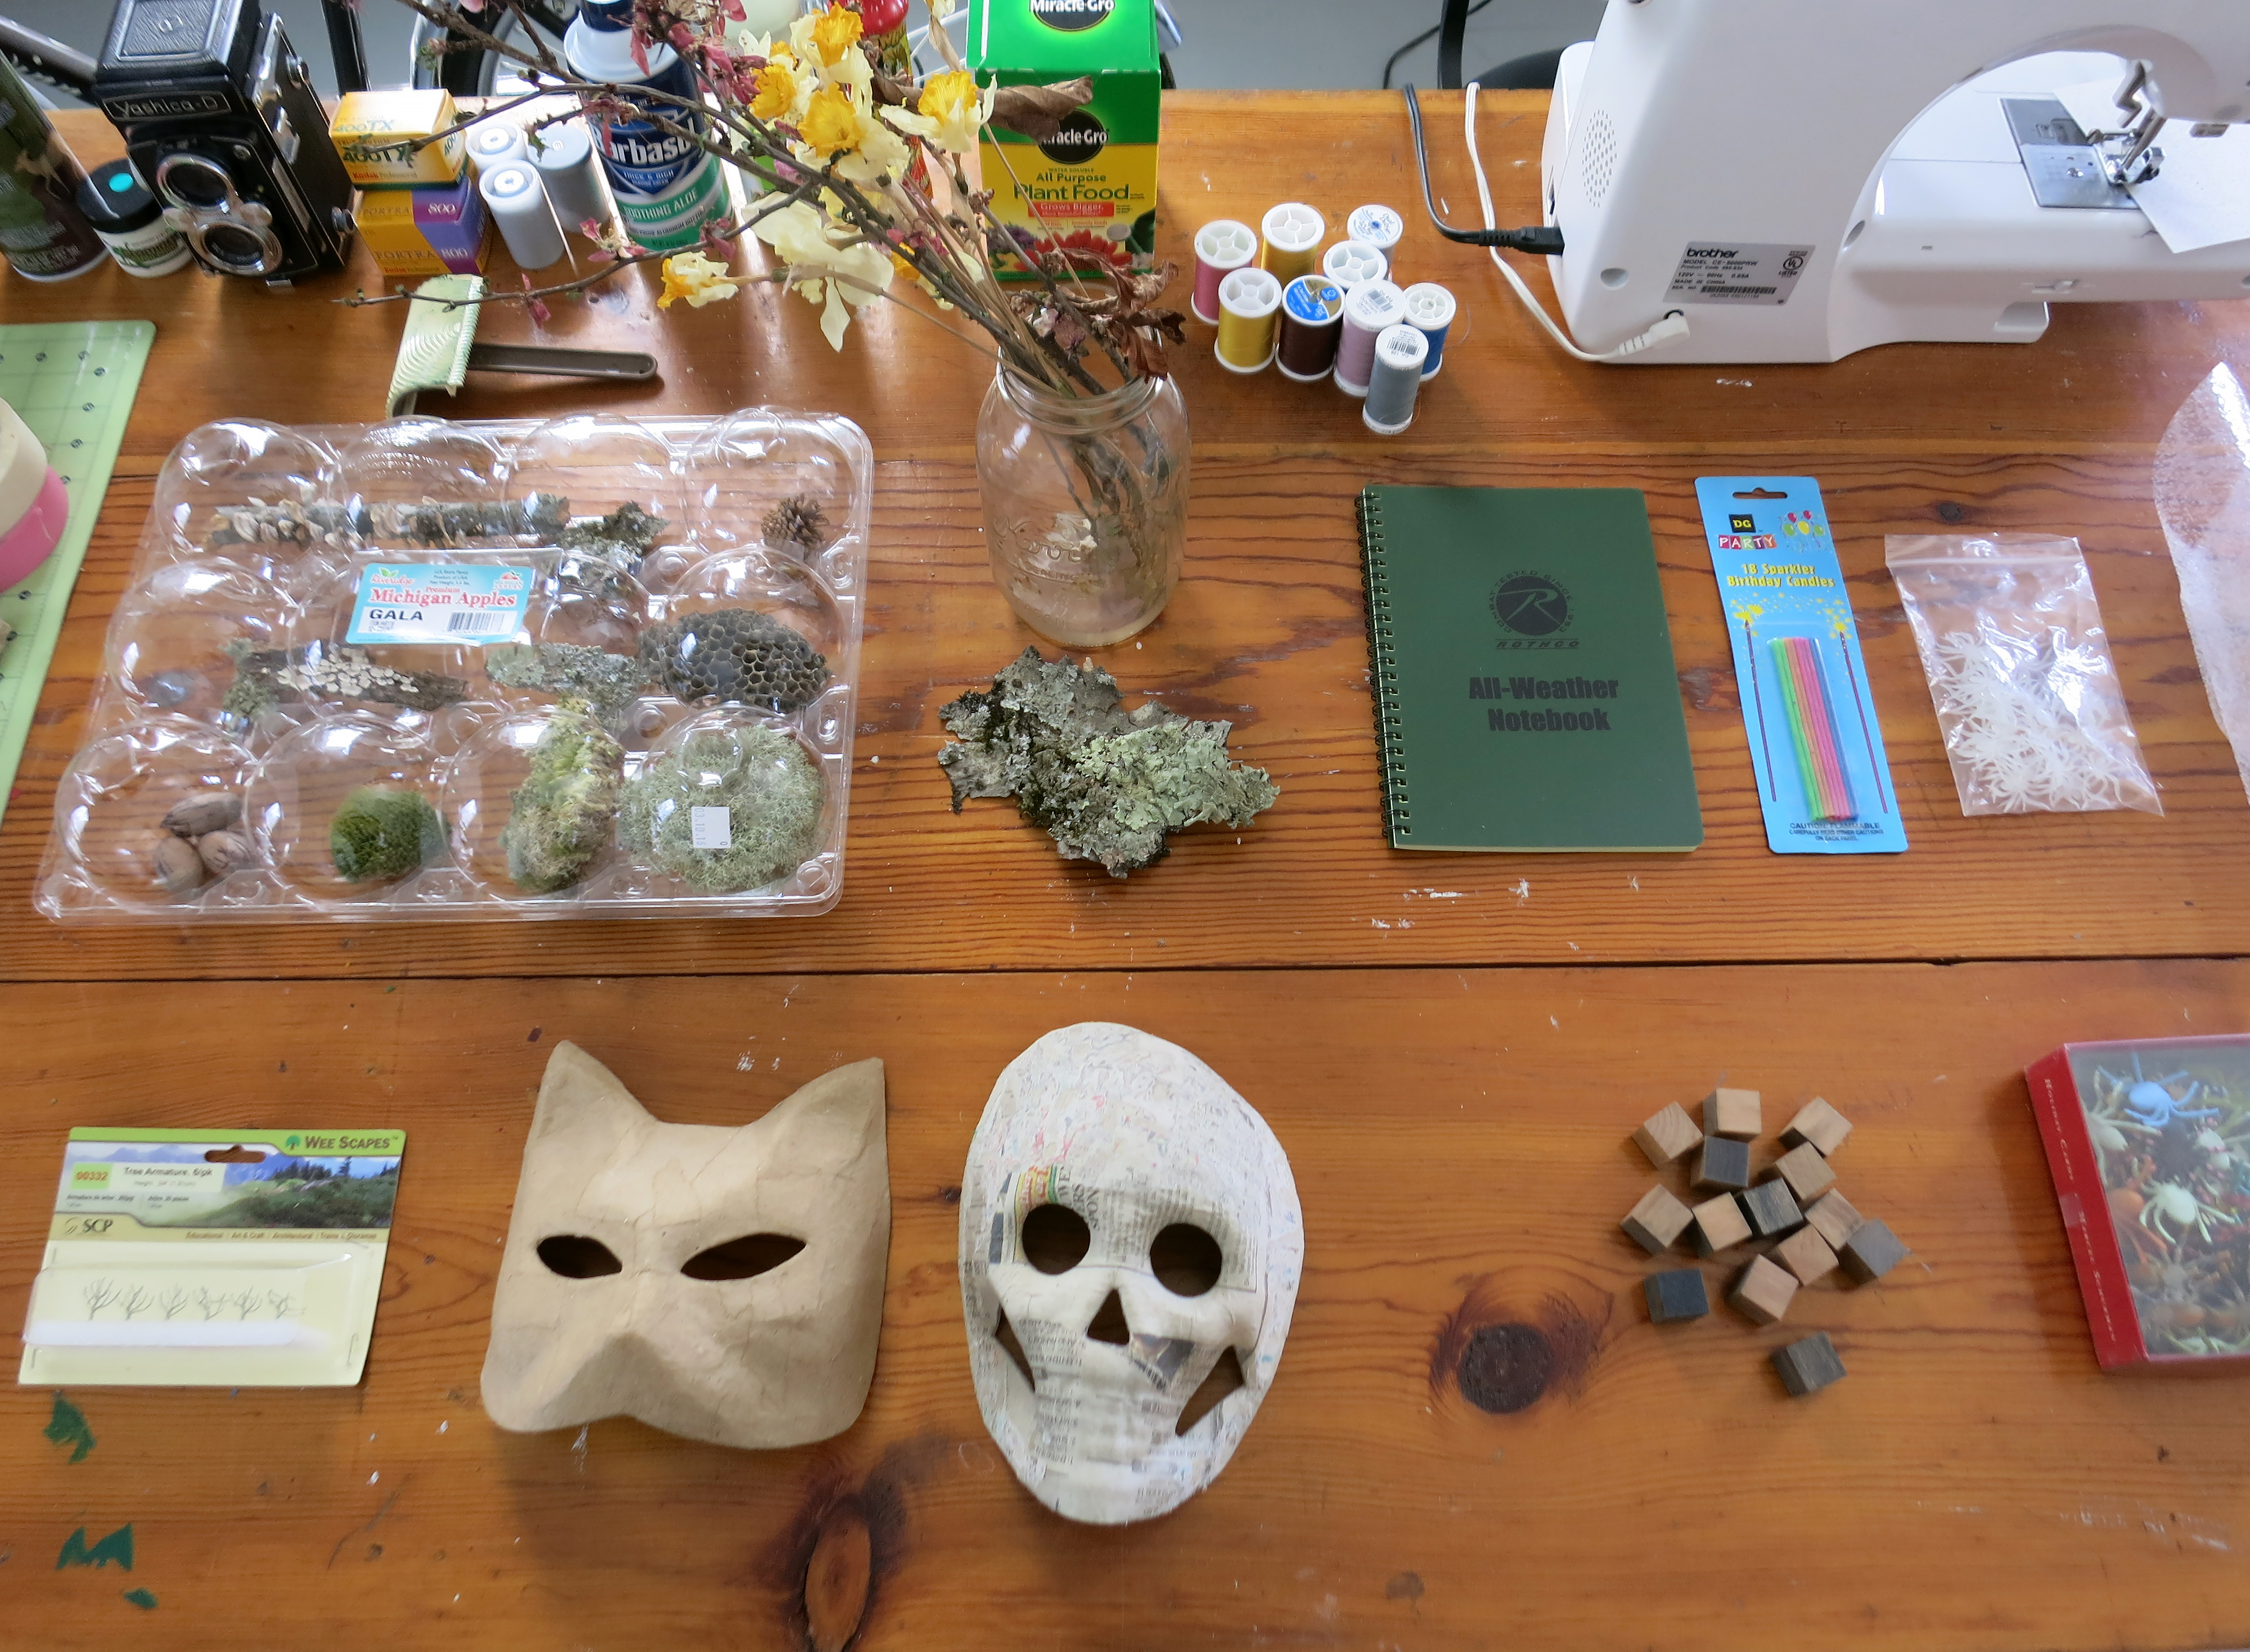 Collections and objects on my work table